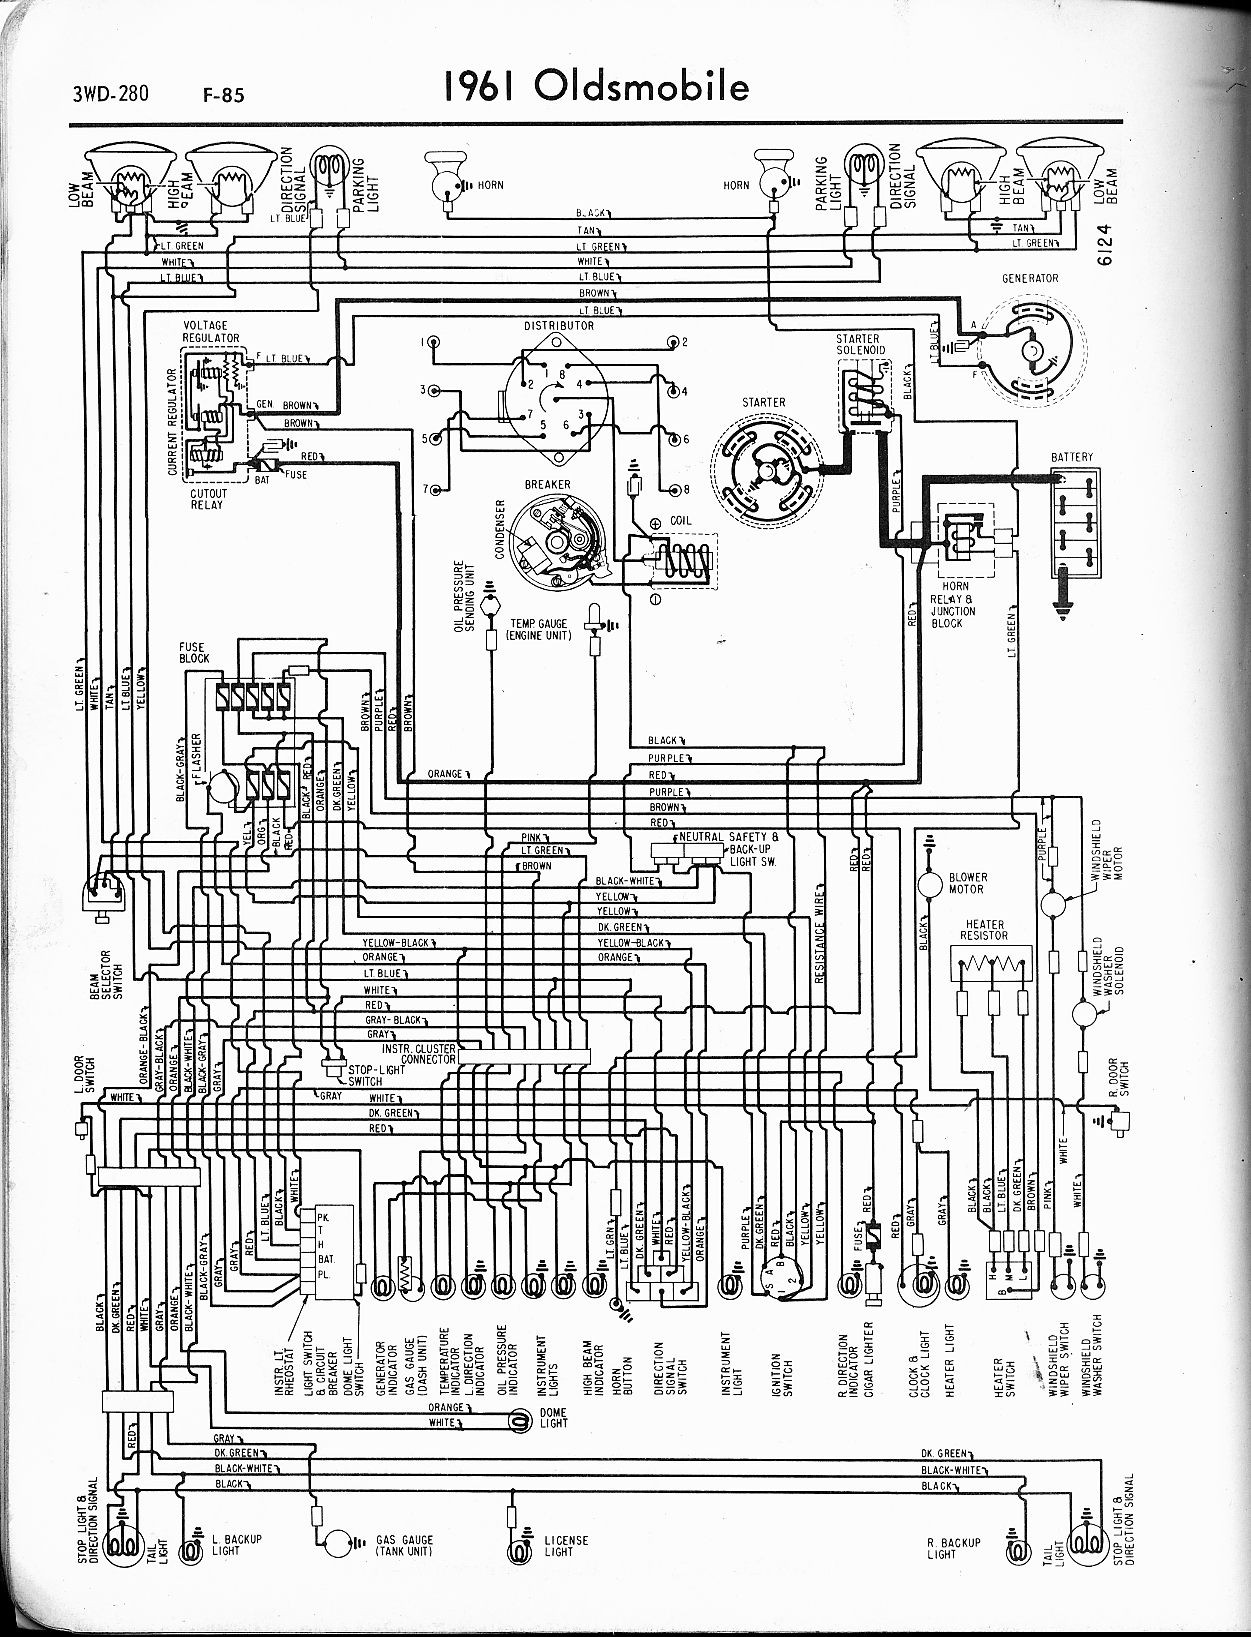 Olds Cutl Wiring Diagrams on honda motorcycle repair diagrams, troubleshooting diagrams, internet of things diagrams, battery diagrams, lighting diagrams, transformer diagrams, engine diagrams, electronic circuit diagrams, hvac diagrams, friendship bracelet diagrams, pinout diagrams, motor diagrams, led circuit diagrams, gmc fuse box diagrams, switch diagrams, sincgars radio configurations diagrams, series and parallel circuits diagrams, smart car diagrams, electrical diagrams,